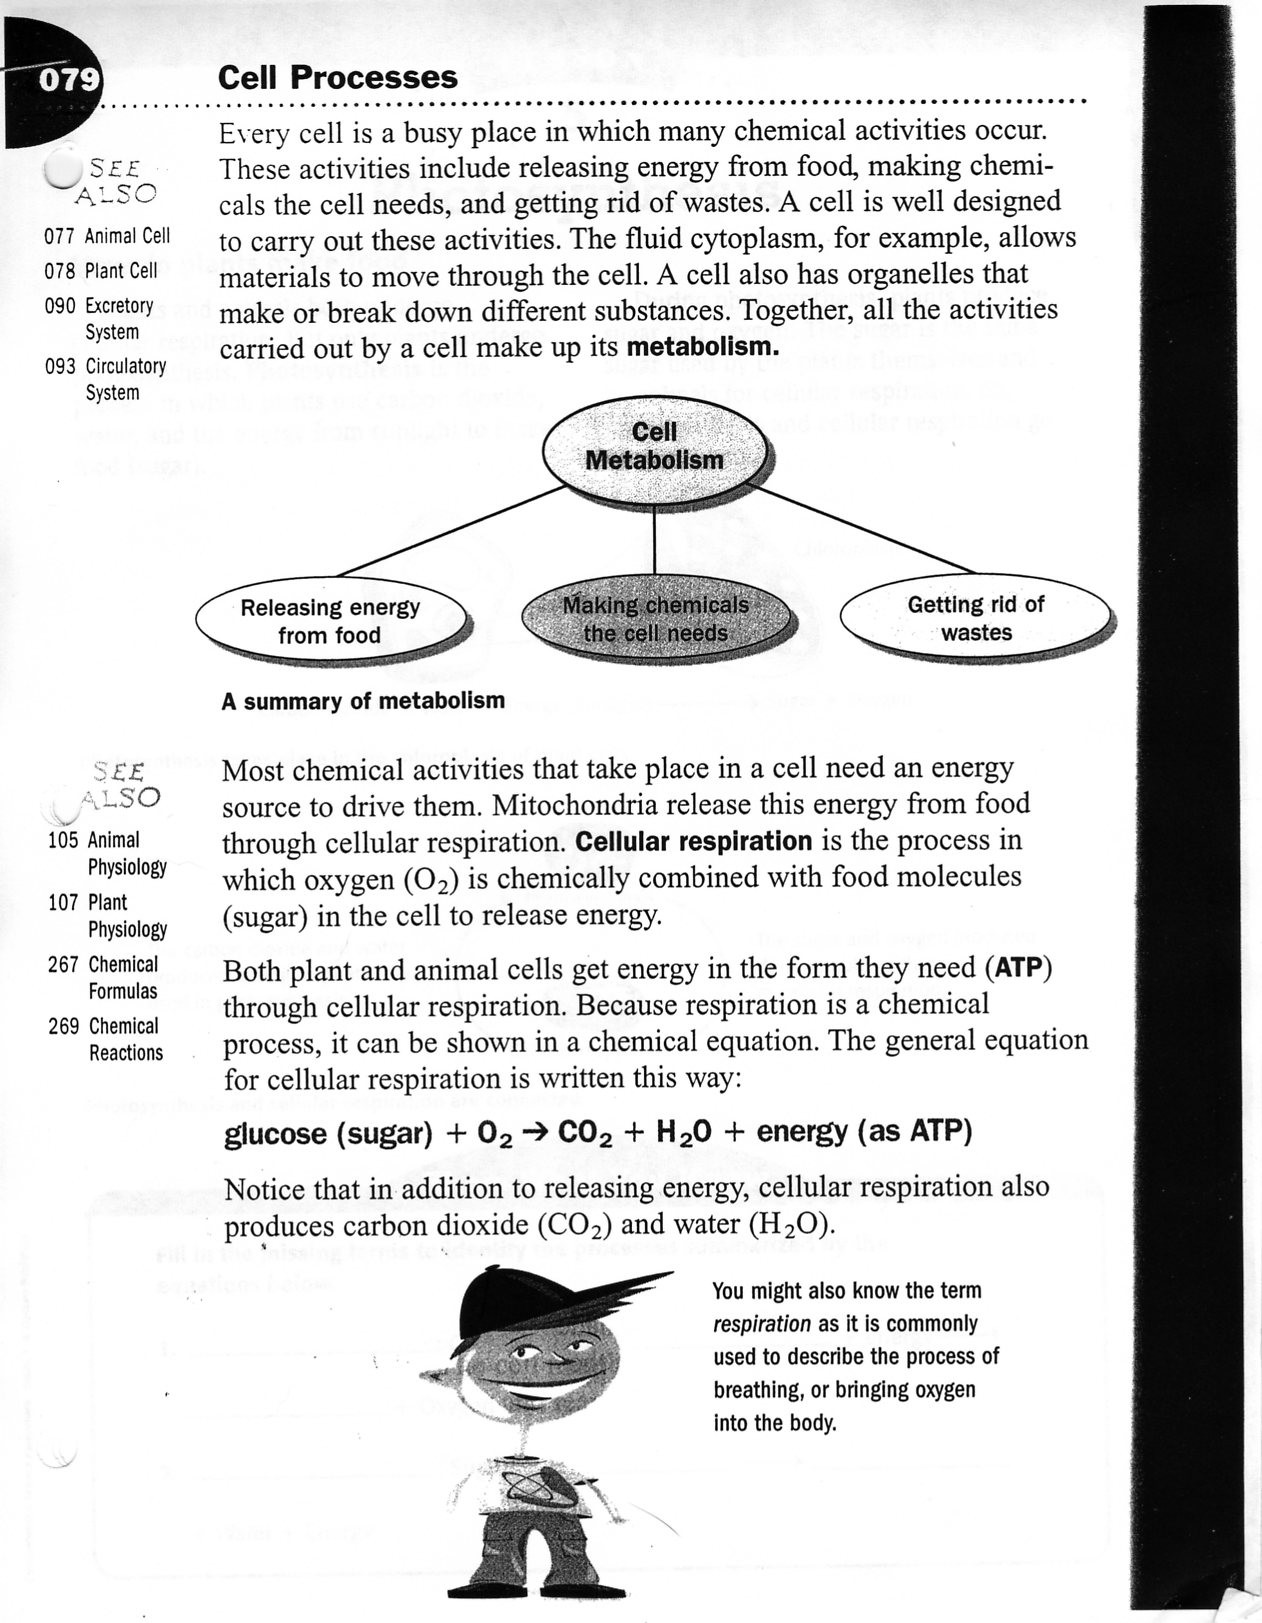 Middle School Science Worksheets Pdf Life Science Easy Worksheets Middle School Cellprocessesws